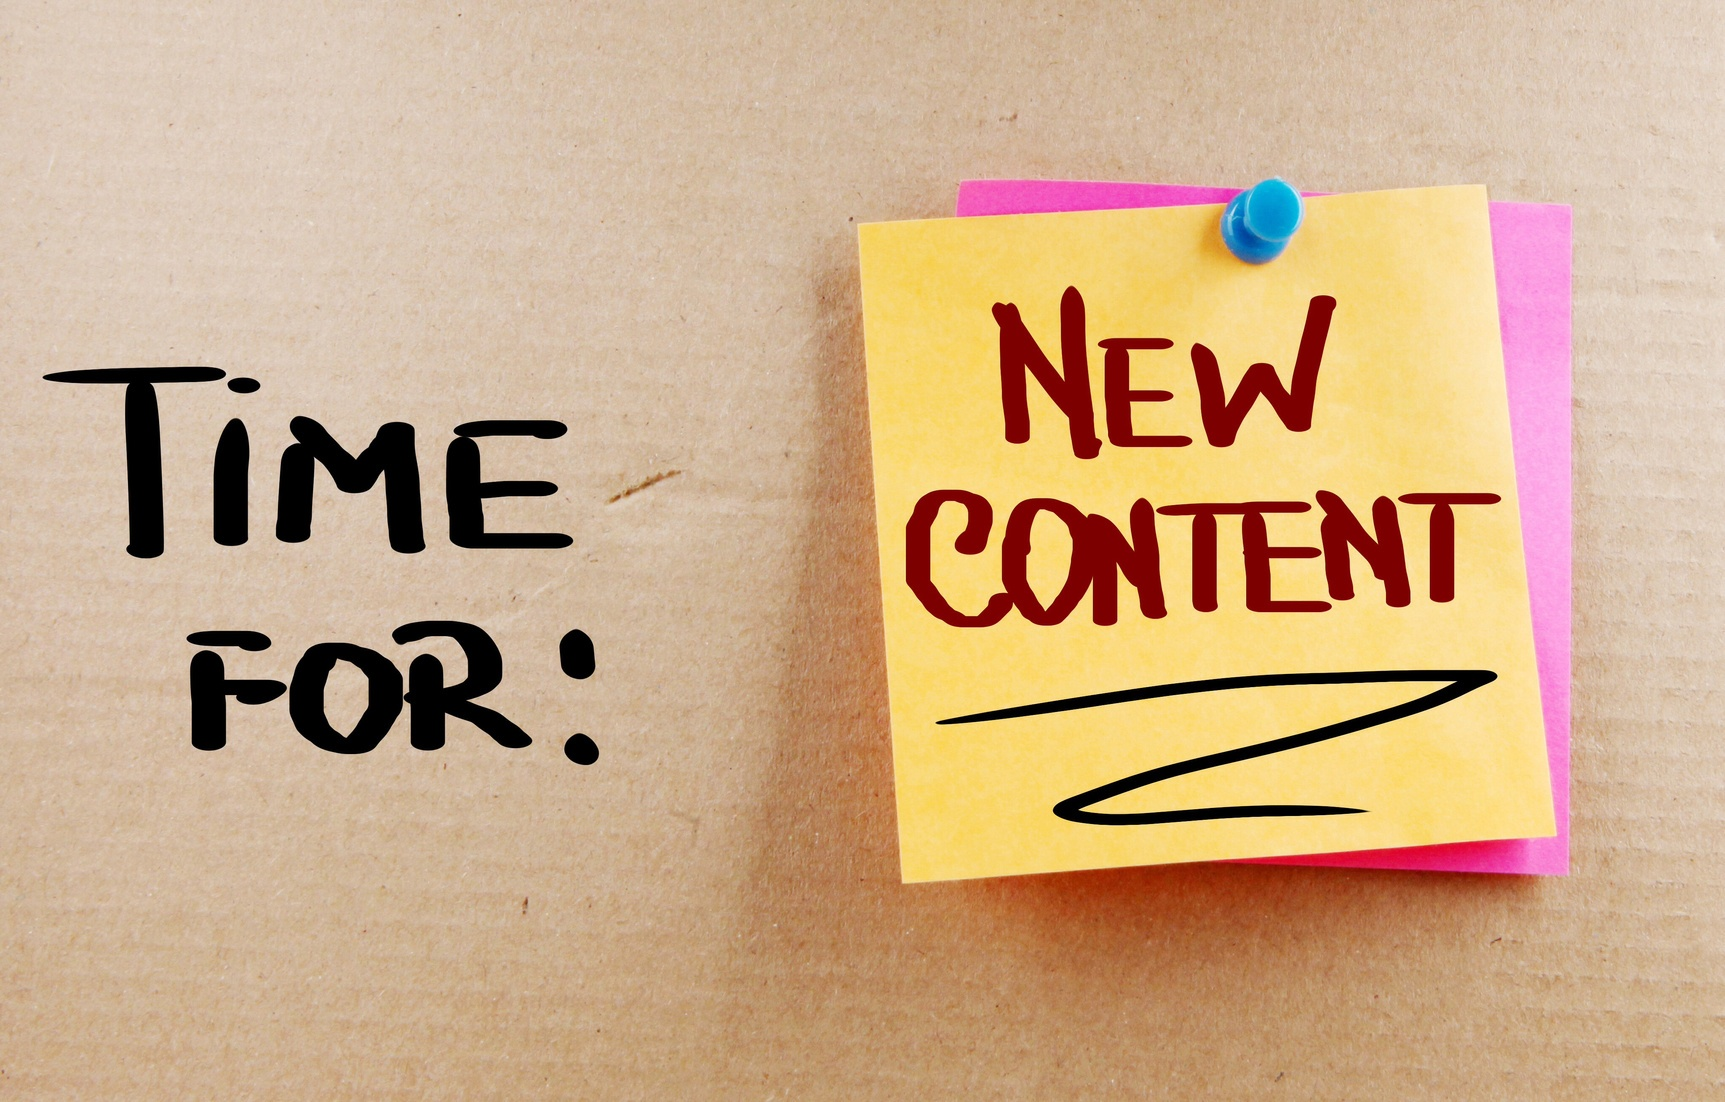 How To Use Content Effectively To Market Your Professional Service